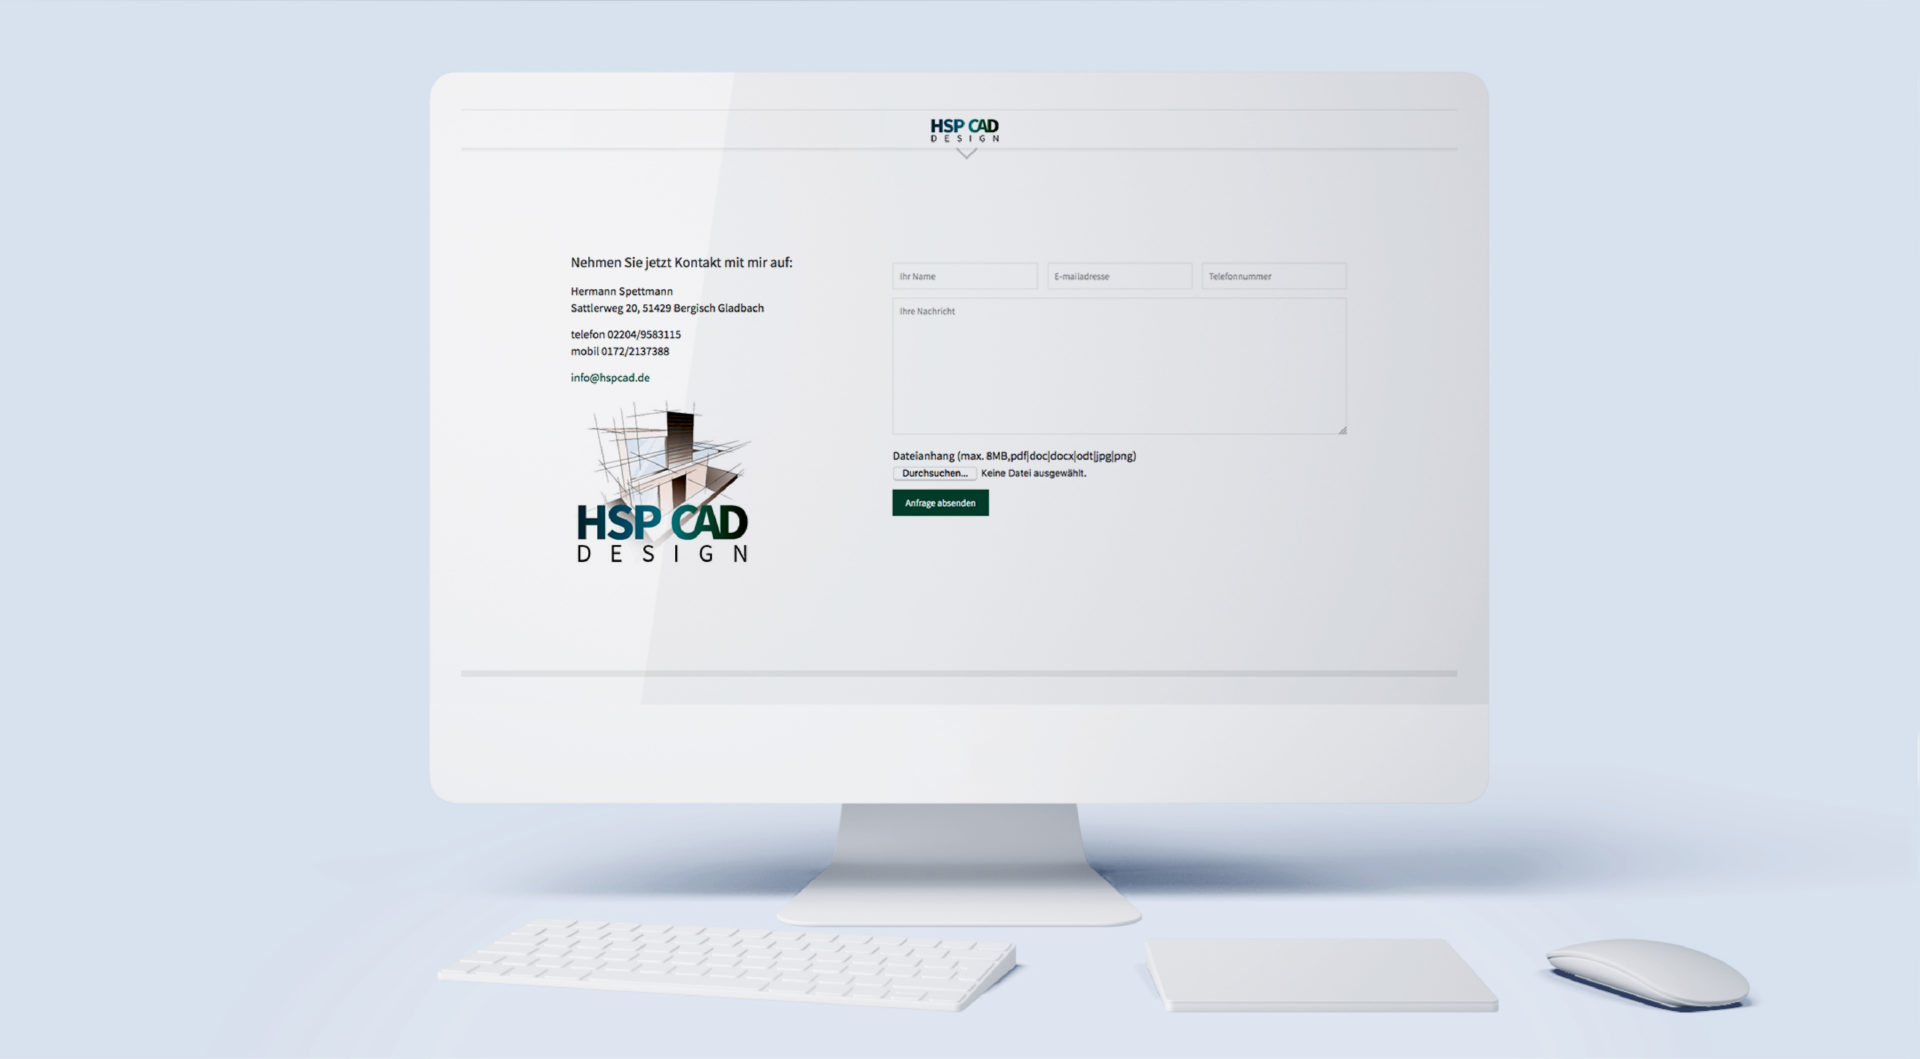 Hsp Cad Referenz 5 Webdesign